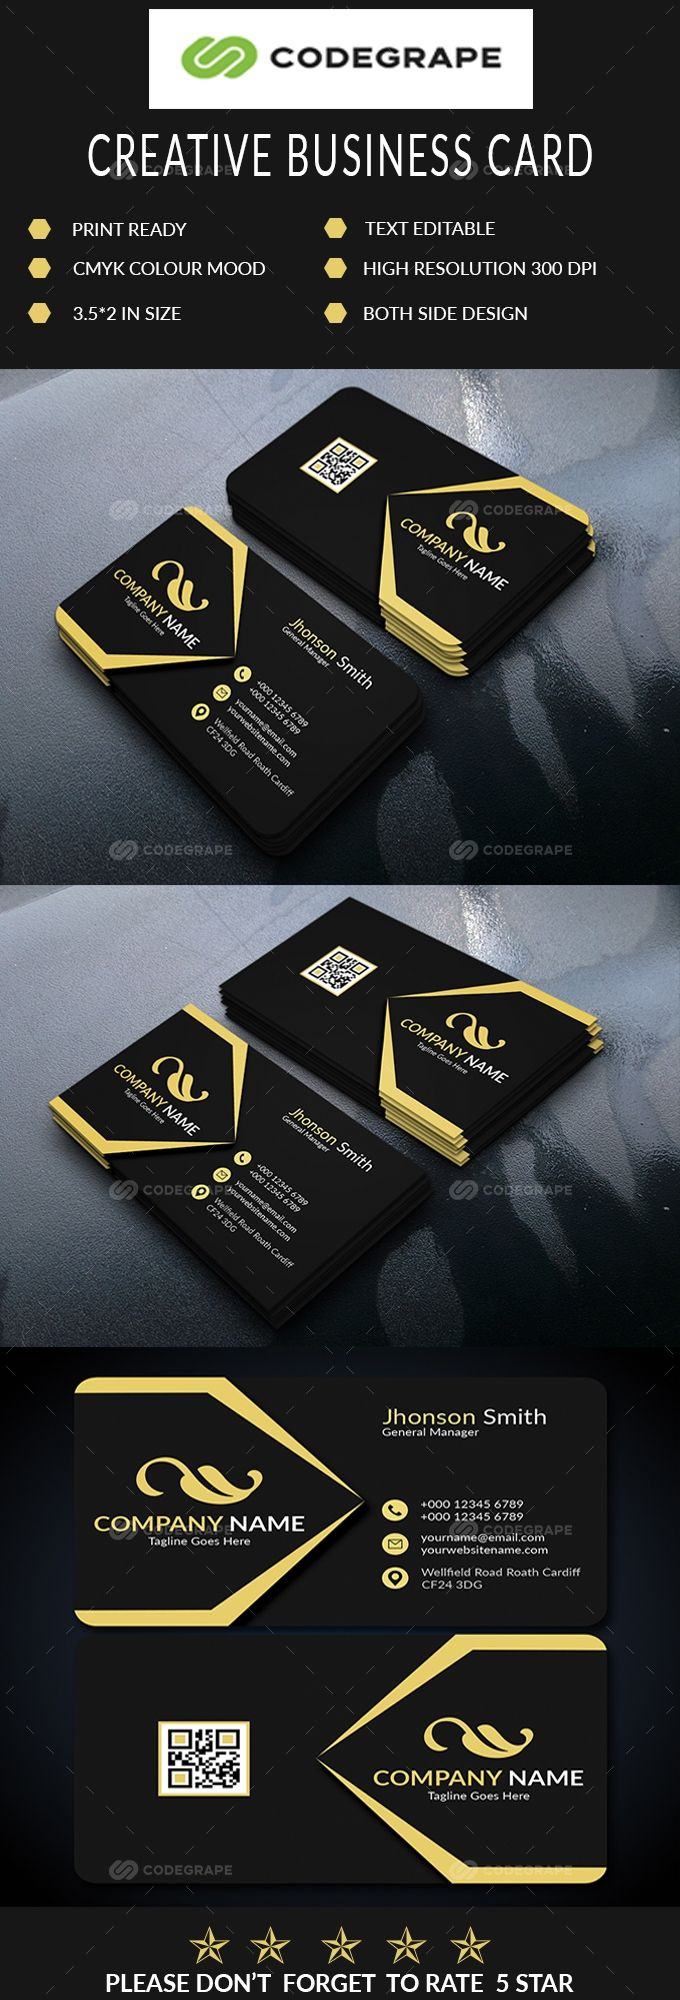 Corporate Business Card In 2020 Corporate Business Card Business Cards Business Card Design